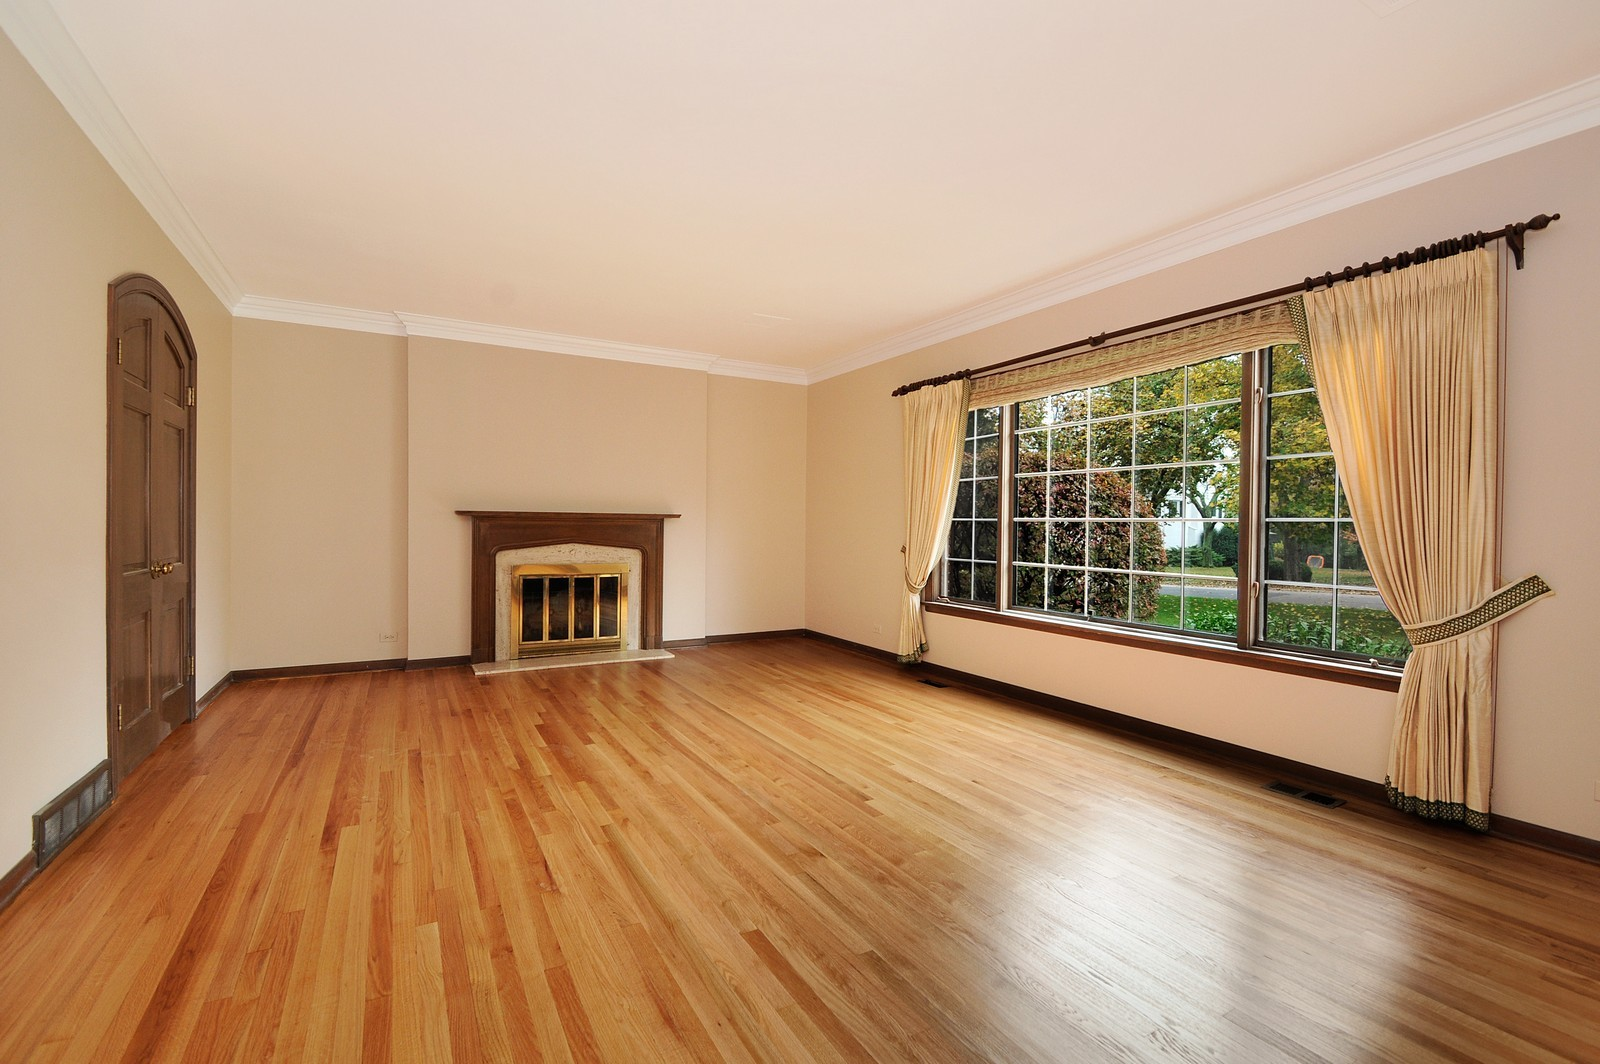 Real Estate Photography - 430 Pebblebrook, Northfield, IL, 60093 - Living room with fireplace